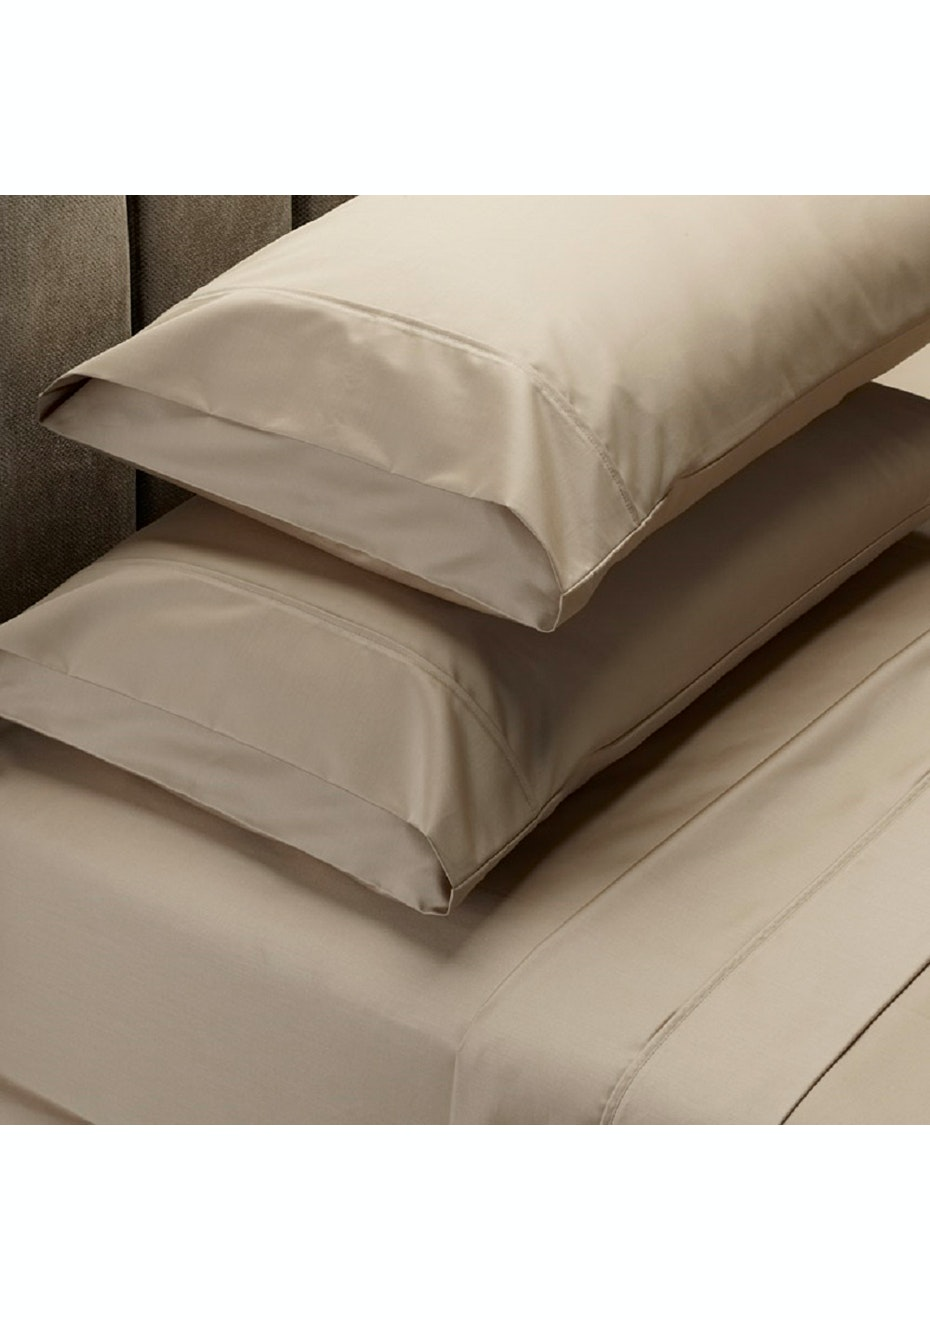 Park Avenue 1000 Thread count 100% Egyptian Cotton Sheet sets Mega King - Oatmeal